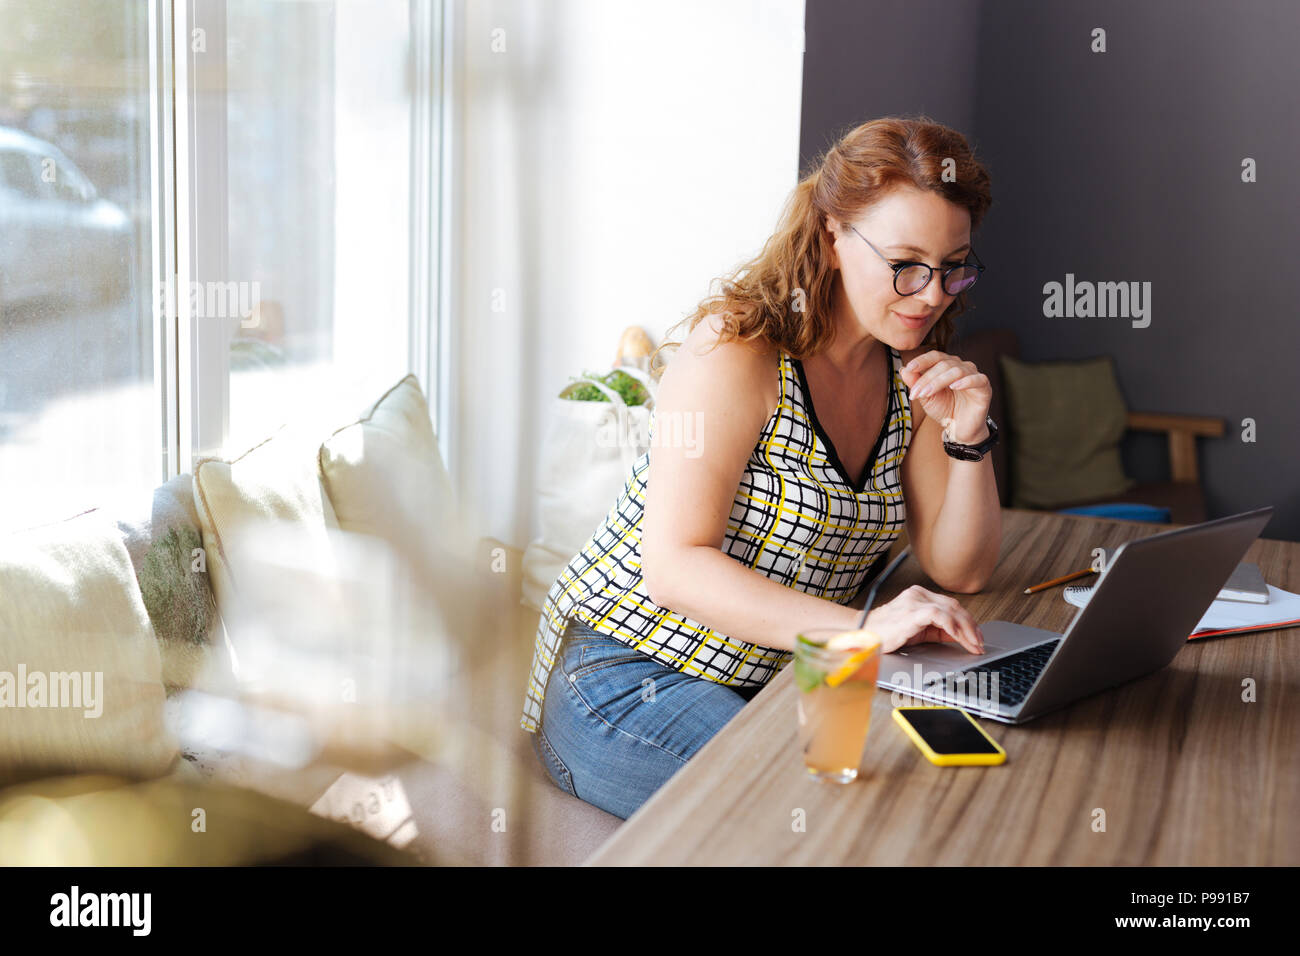 Red-haired freelance writer sitting in cafe while working hard - Stock Image